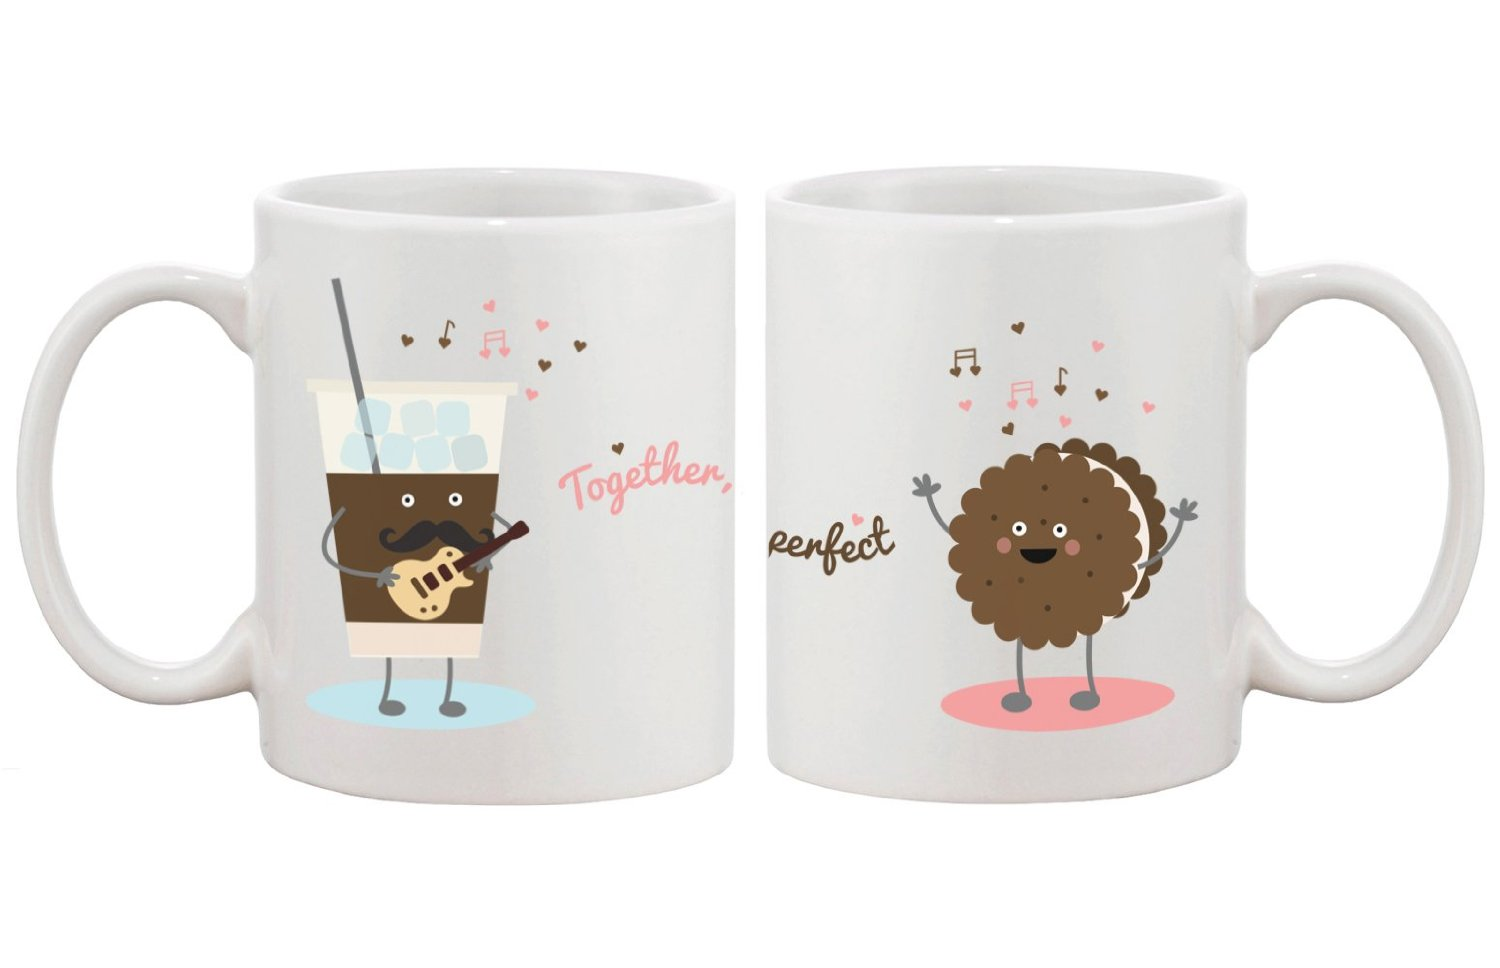 Amazon.com: Ice Coffee Cookie Matching Couple Mugs - Perfect Wedding, Engagement, Anniversary, and Valentines Day Gift for Newlyweds: Kitchen & Dining